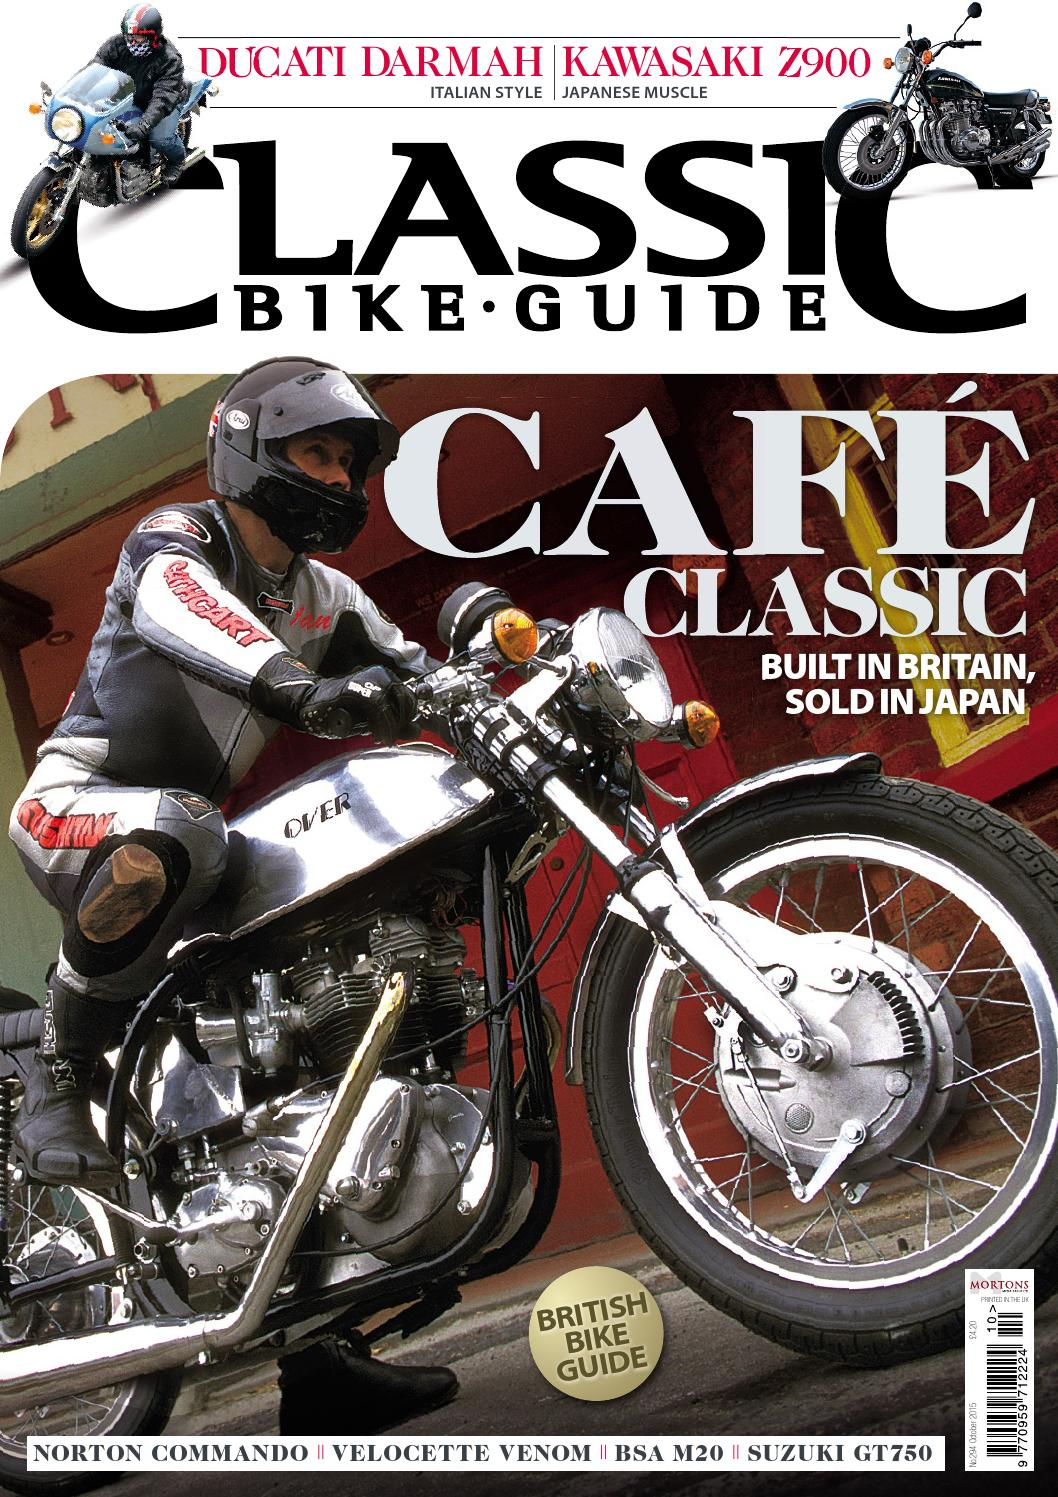 Classic Bike Guide October 2015 Preview By Mortons Media Group Ltd Issuu